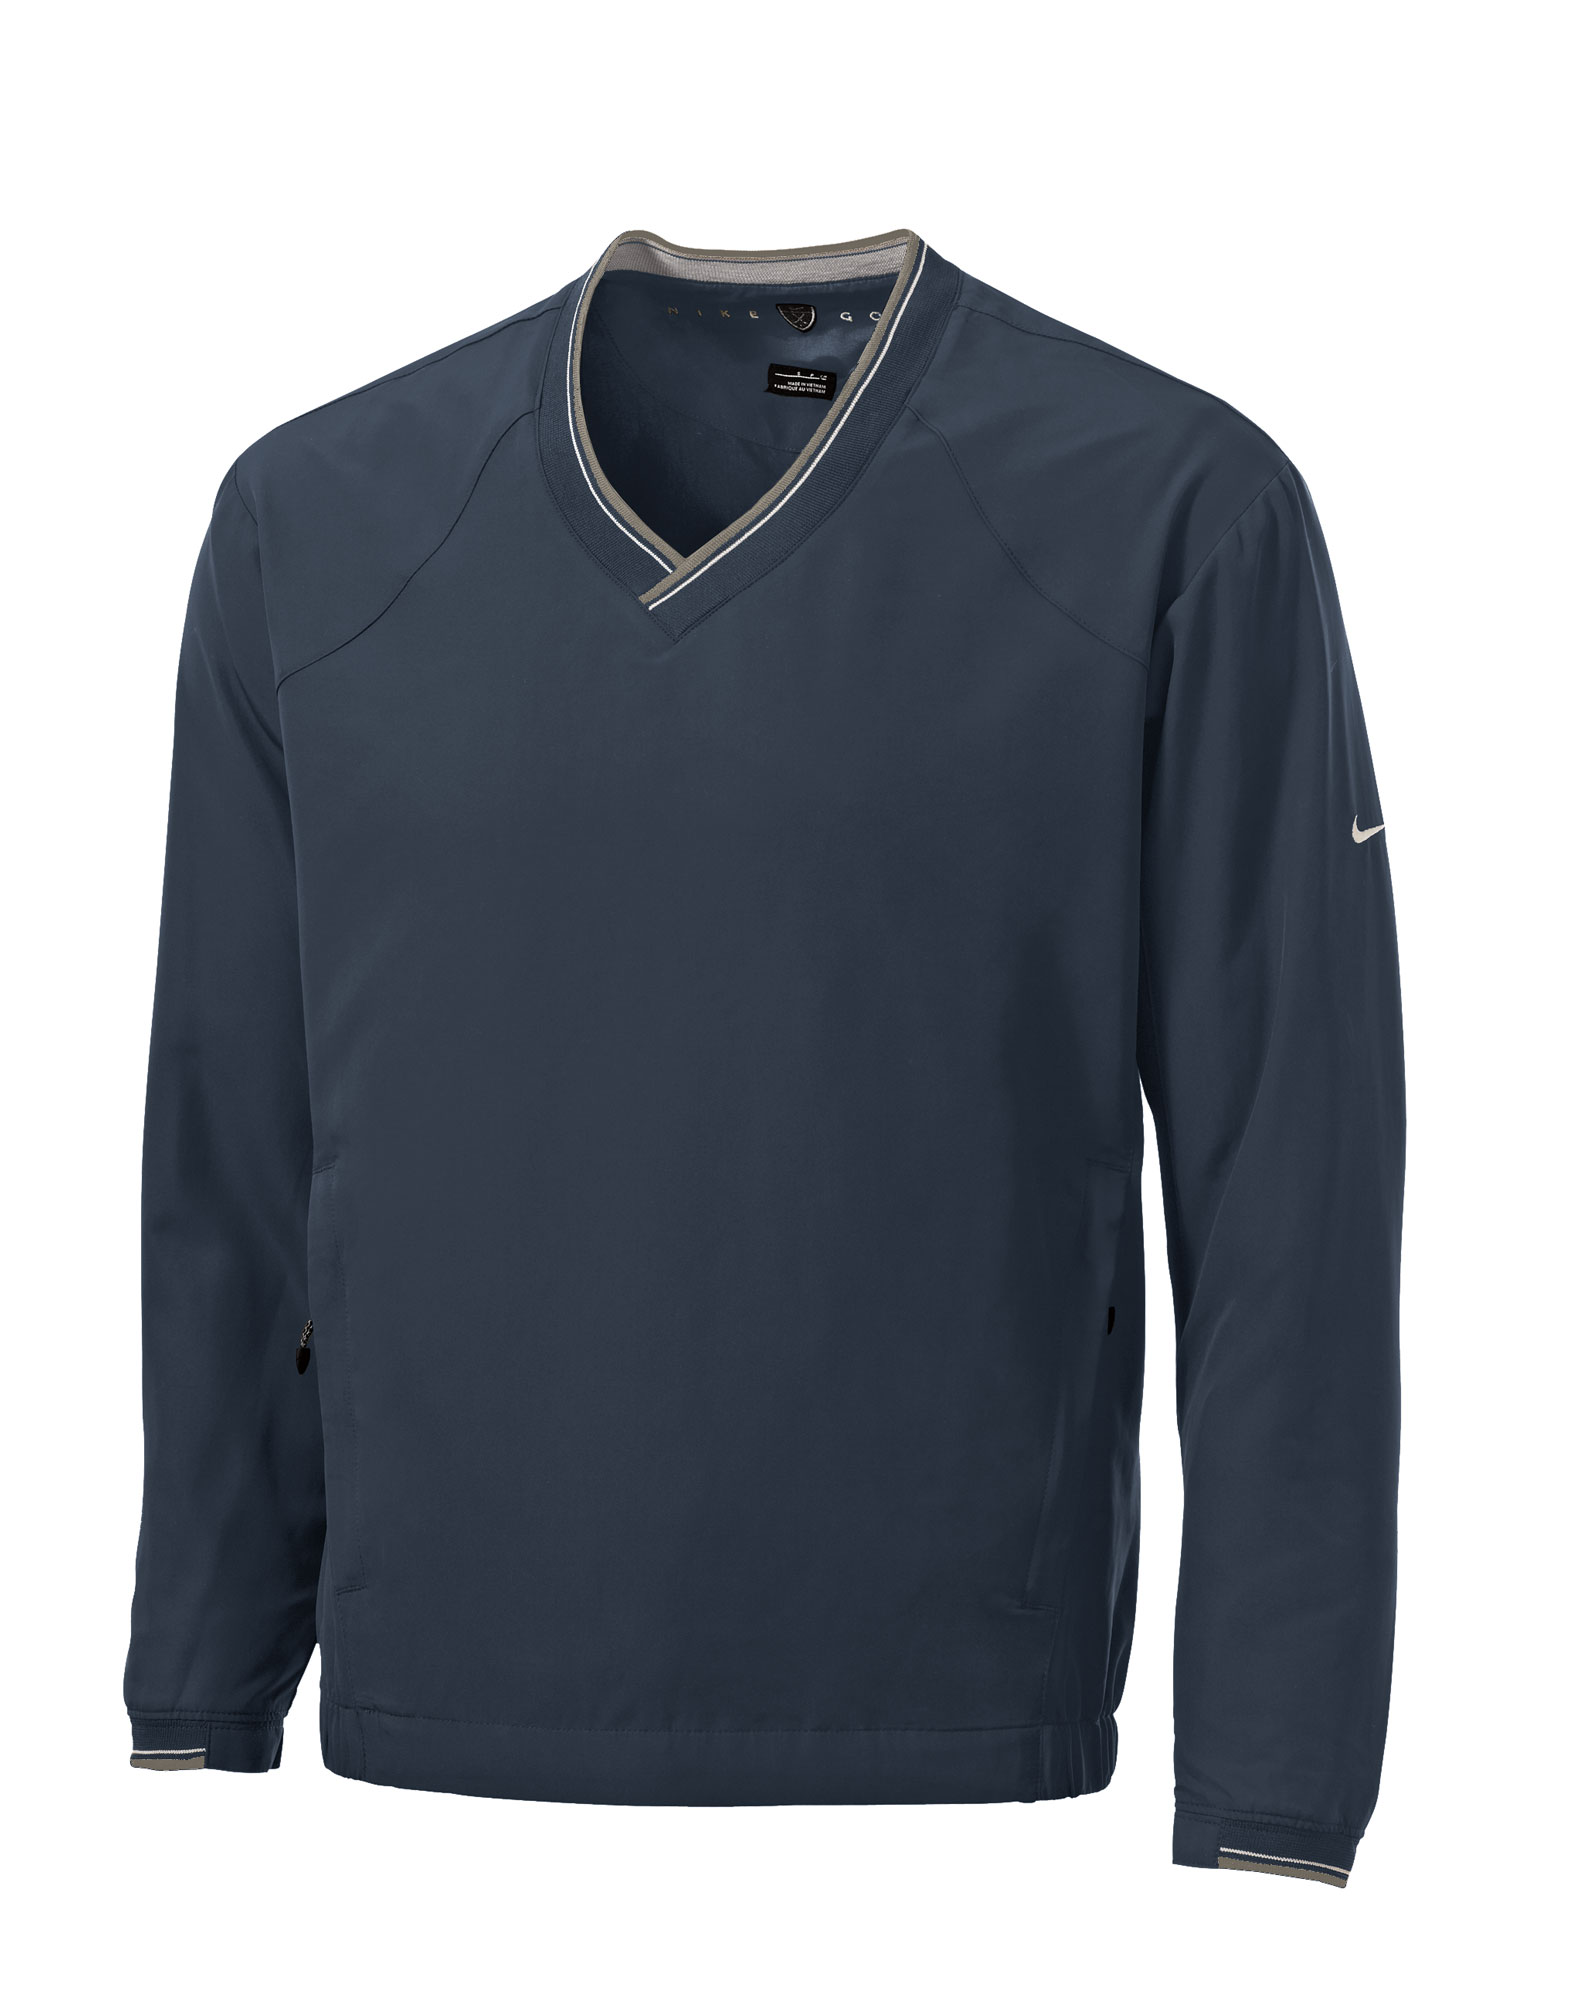 Custom Nike Mens V Neck Windshirt W Trimmed Collar